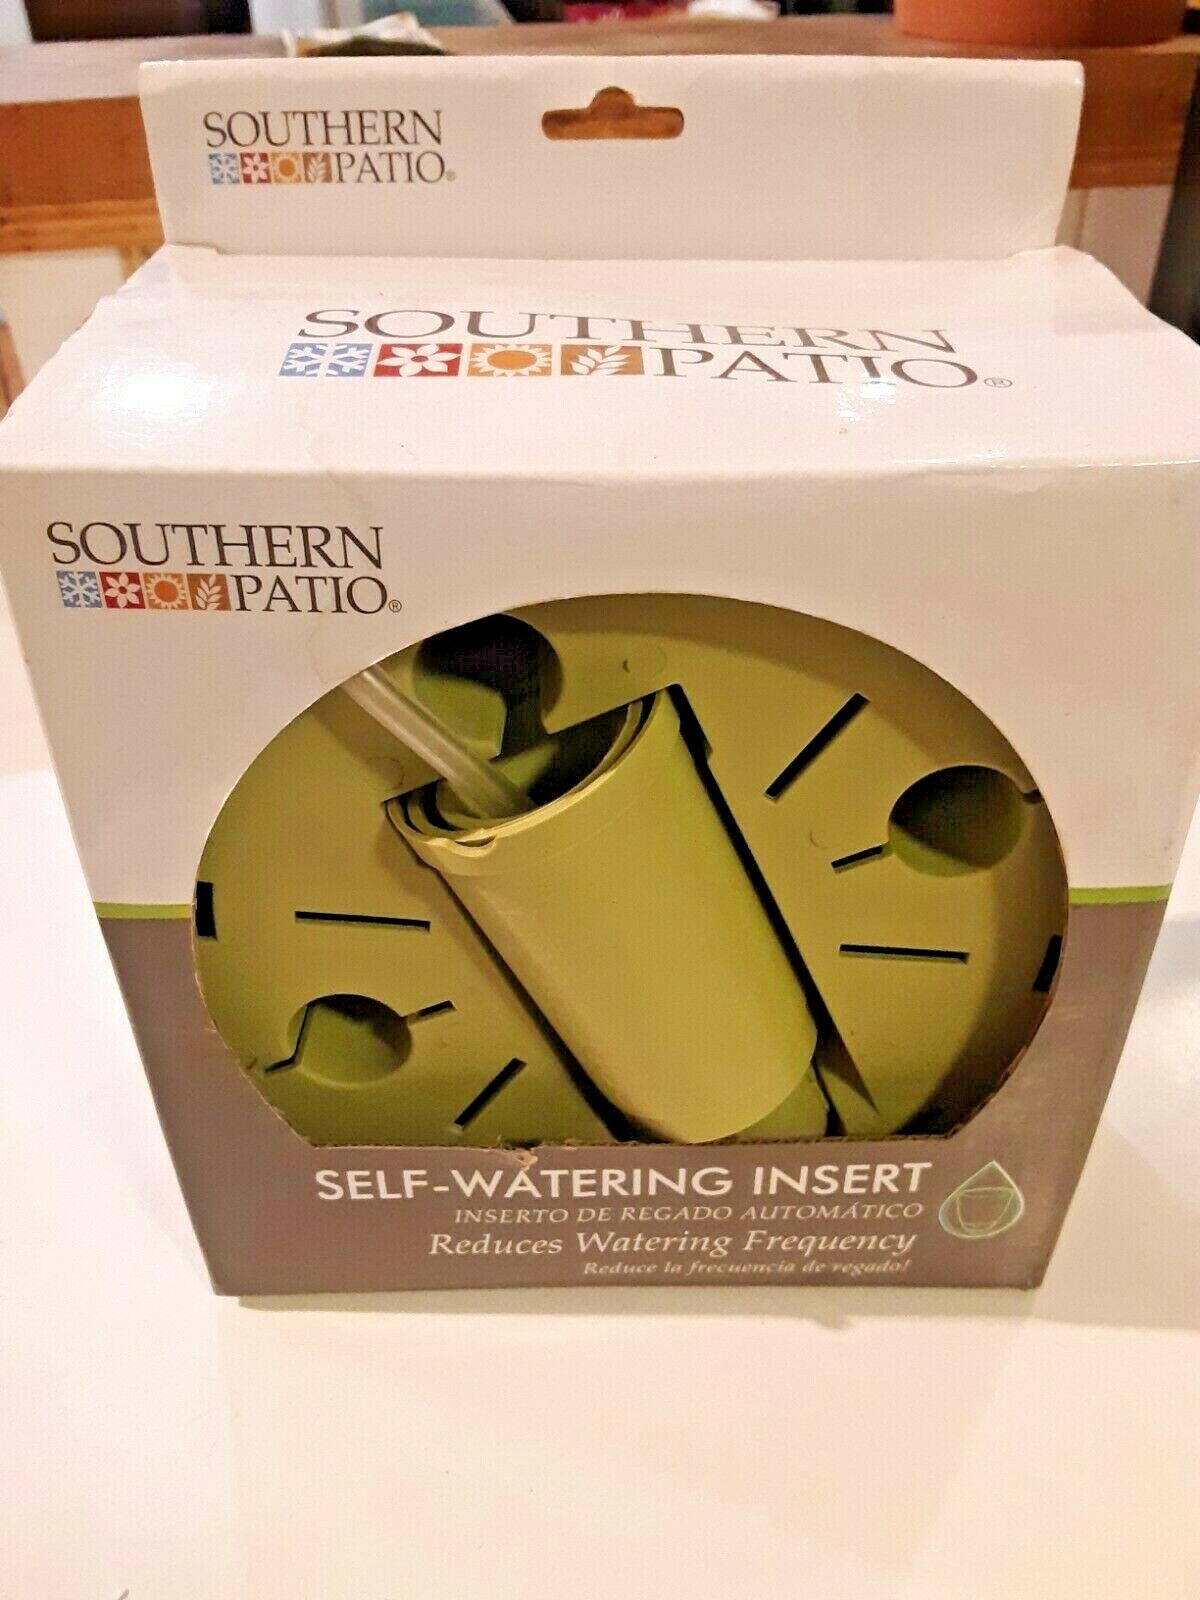 Southern Patio Self-Watering Planter Insert with Adjustable Height Refill Tube